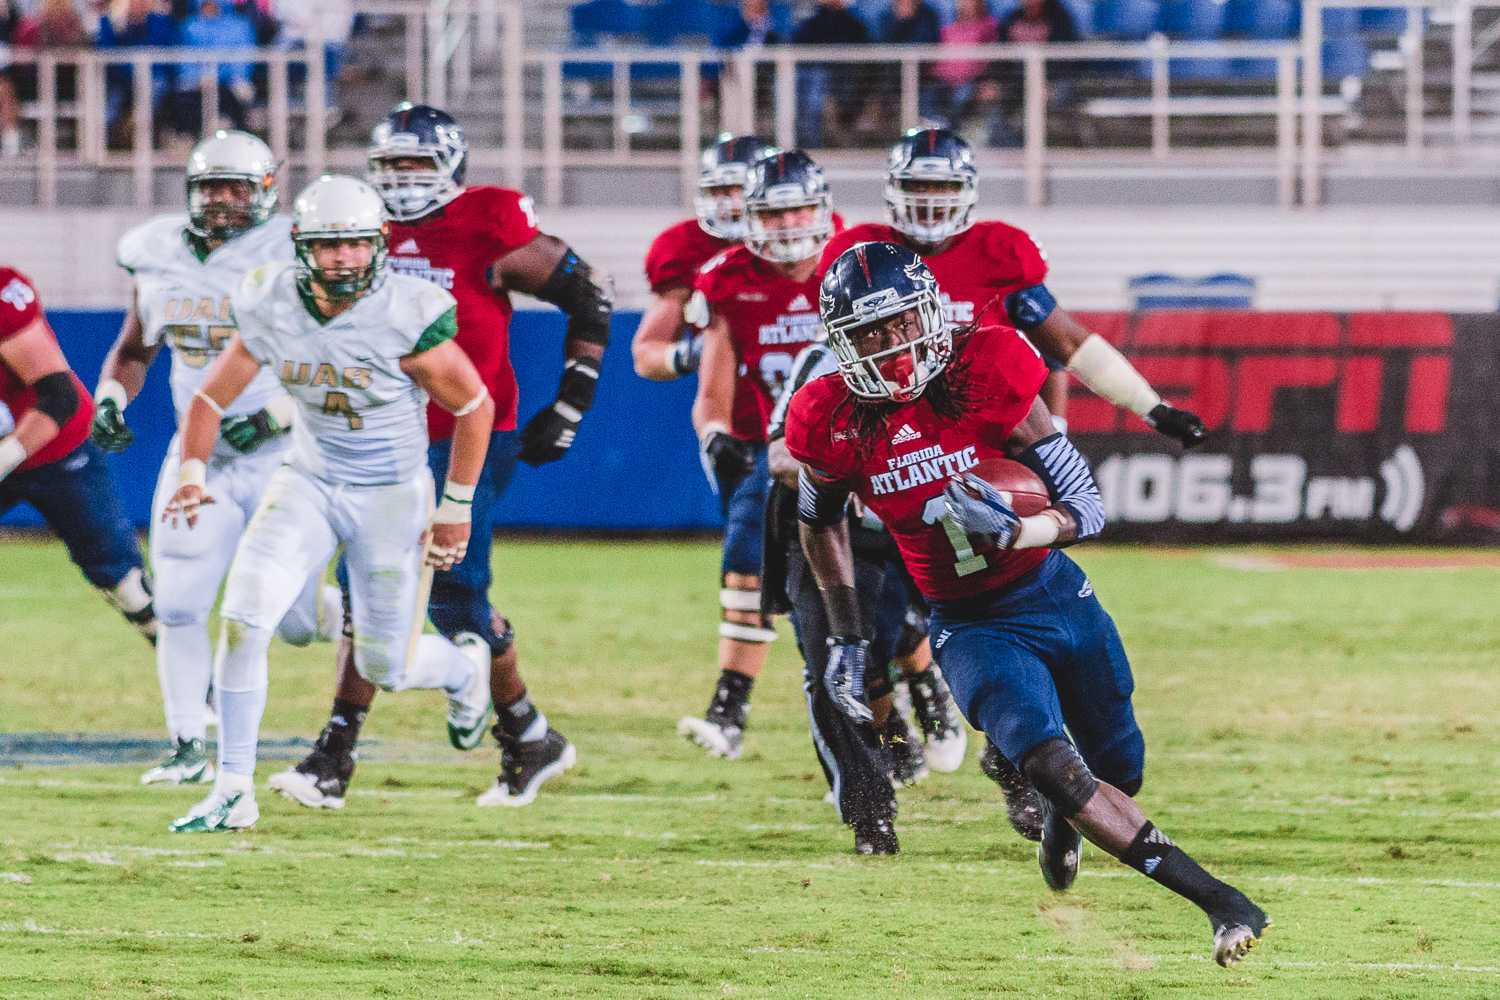 [ Gouthaman Raveendran | Contributing Photographer ] FAU wide receiver Lucky Whitehead, evades UAB defenders to pick up yards.